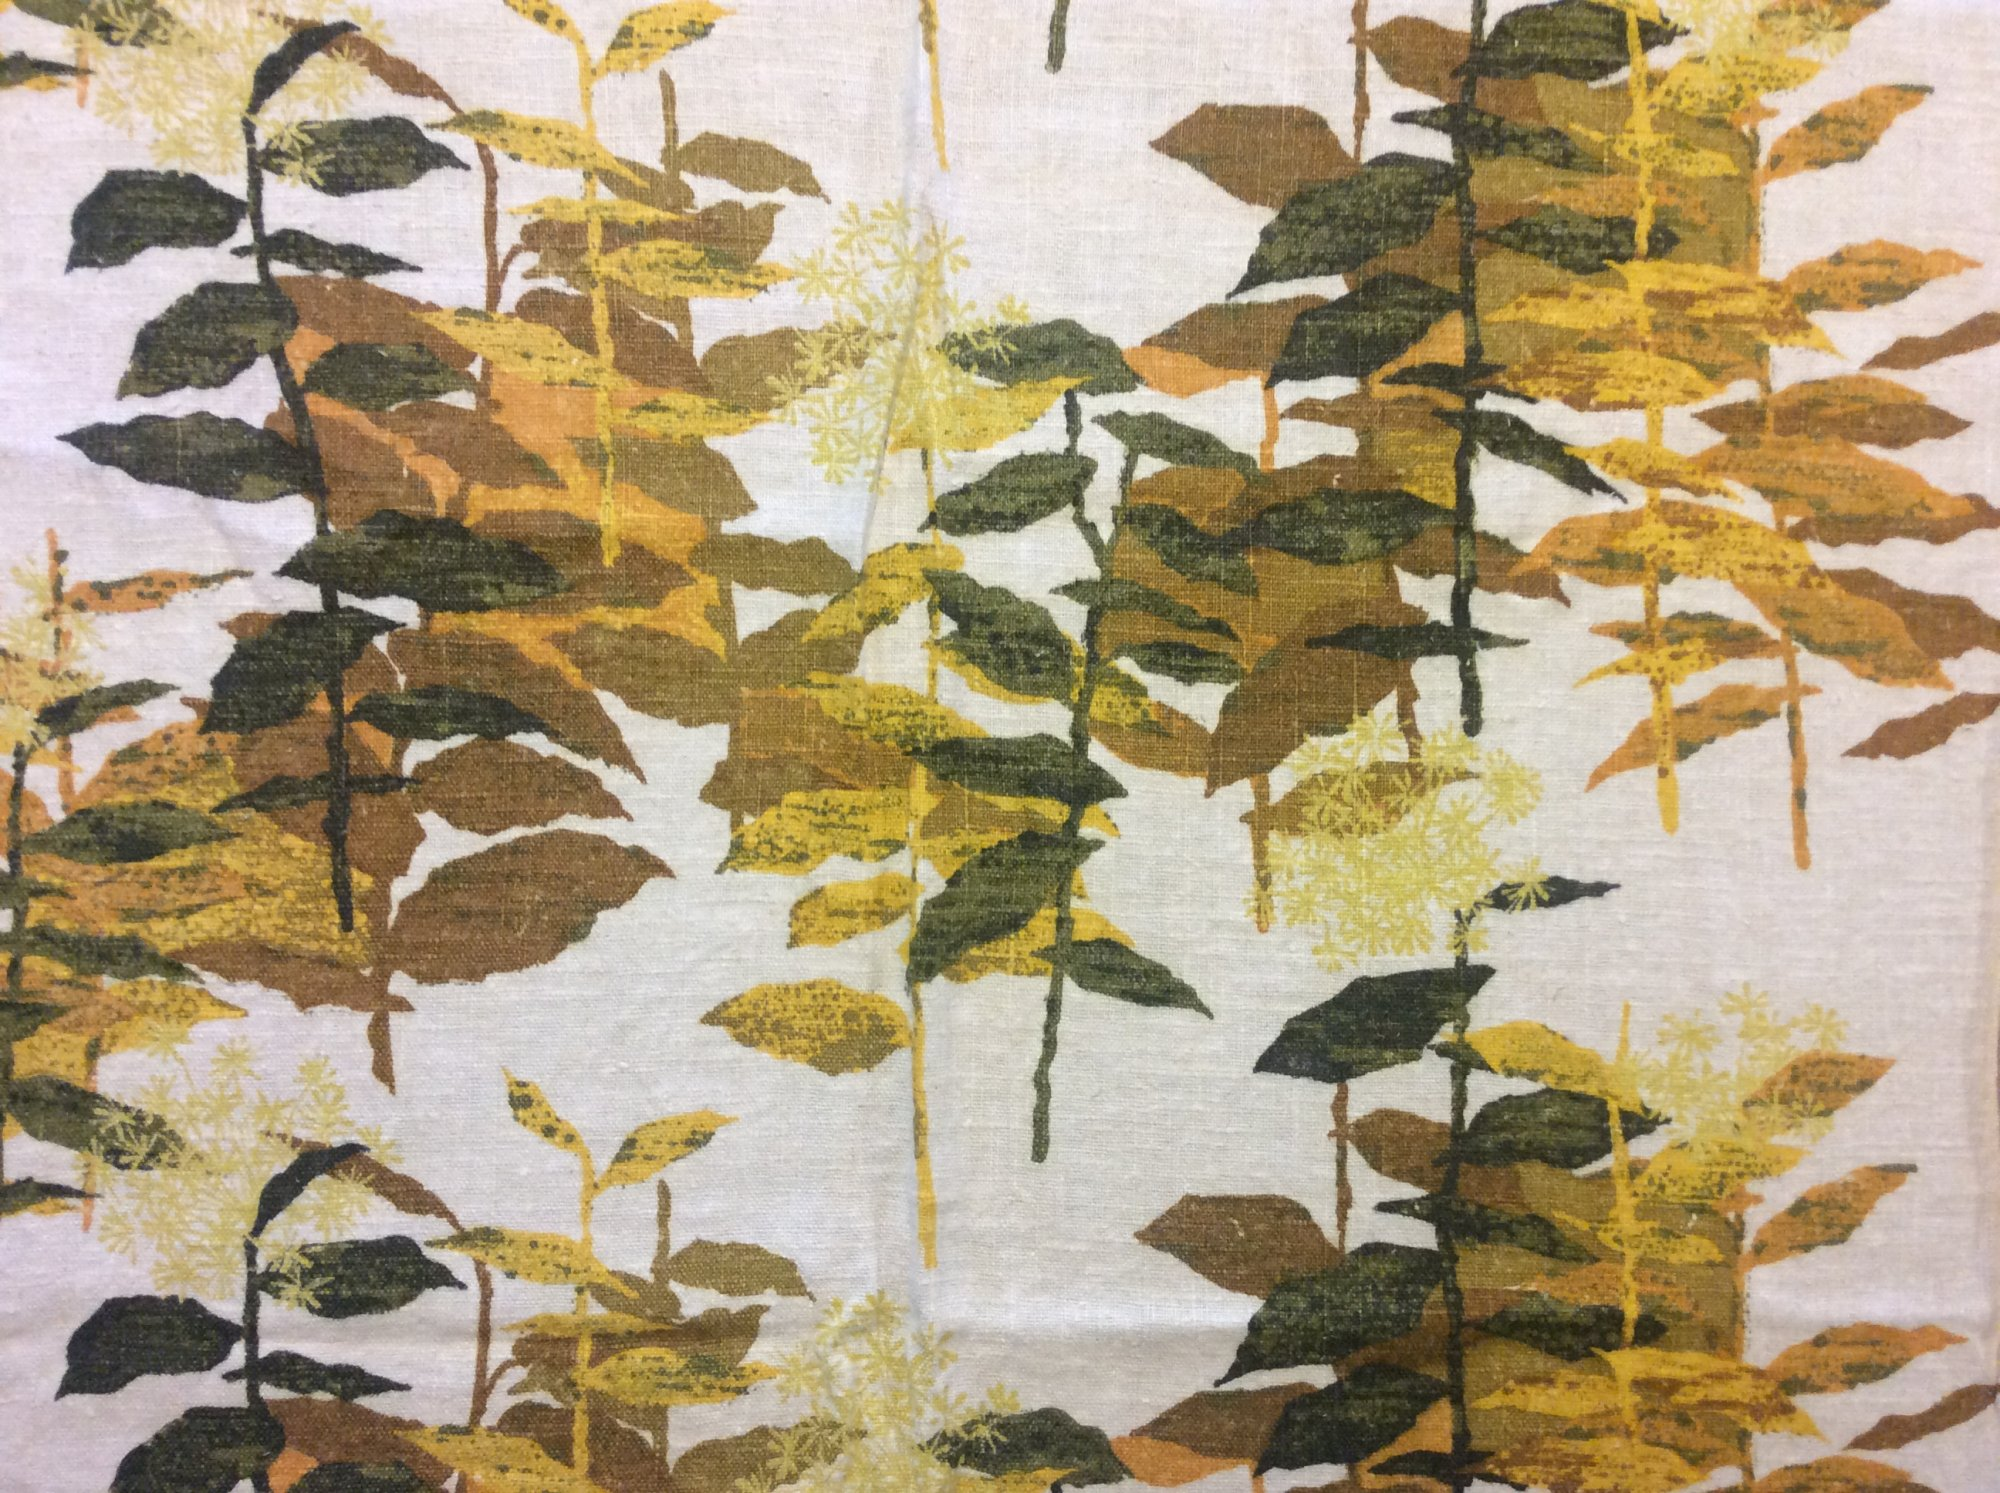 RARE! True Vintage Mustard Yellow and Olive Tone Botanical Dandelion Floral Print Kitschy Screen Printed Heavy Weight Linen Mid Century Home Decor Canvas Fabric TRV014